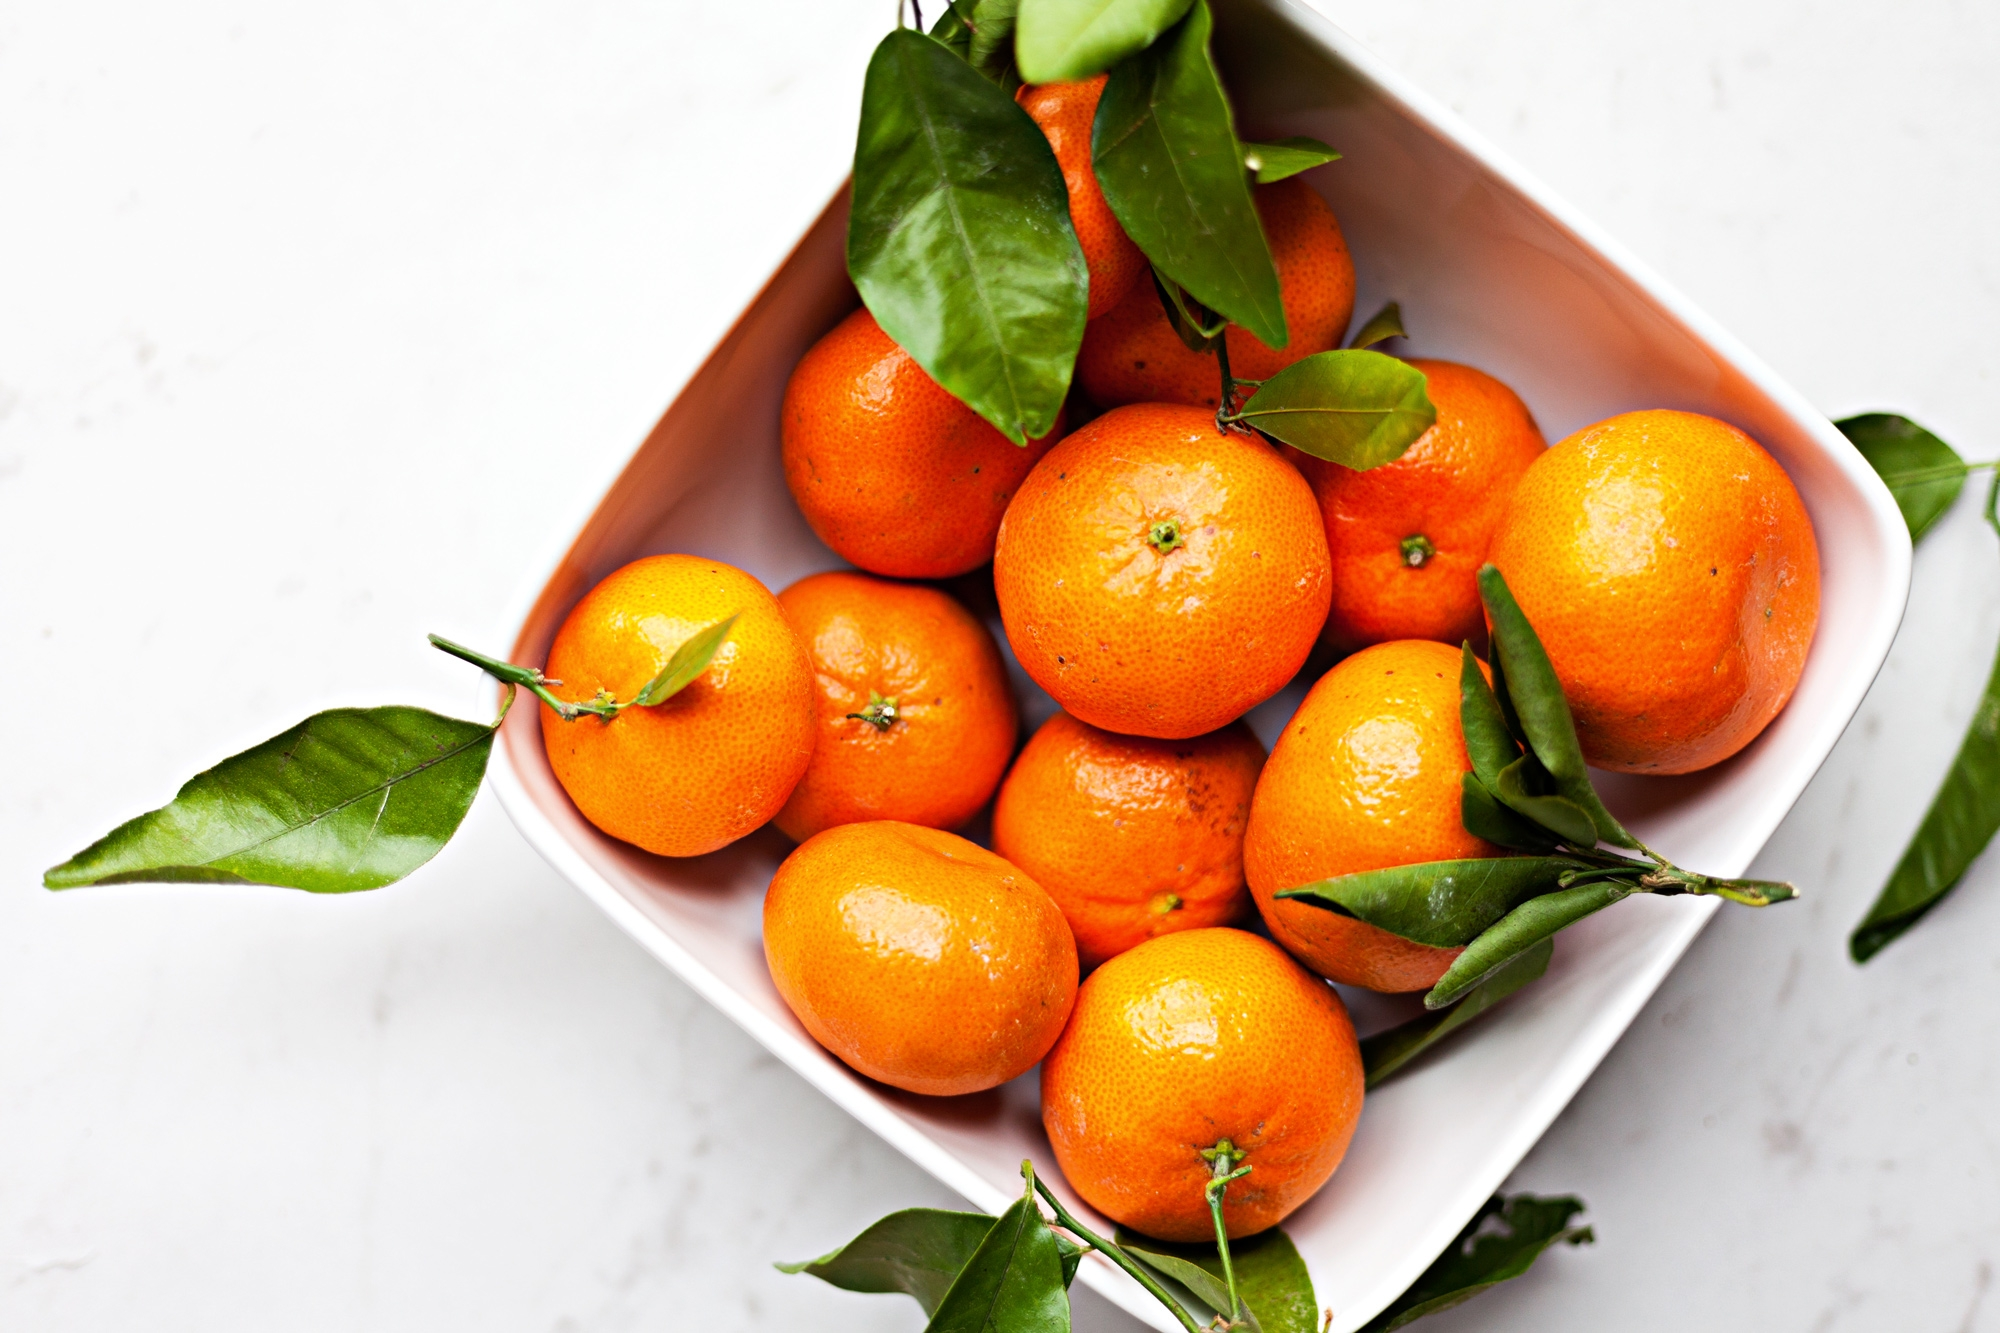 Photograph of some oranges in a bowl, part of the Food Photography series.